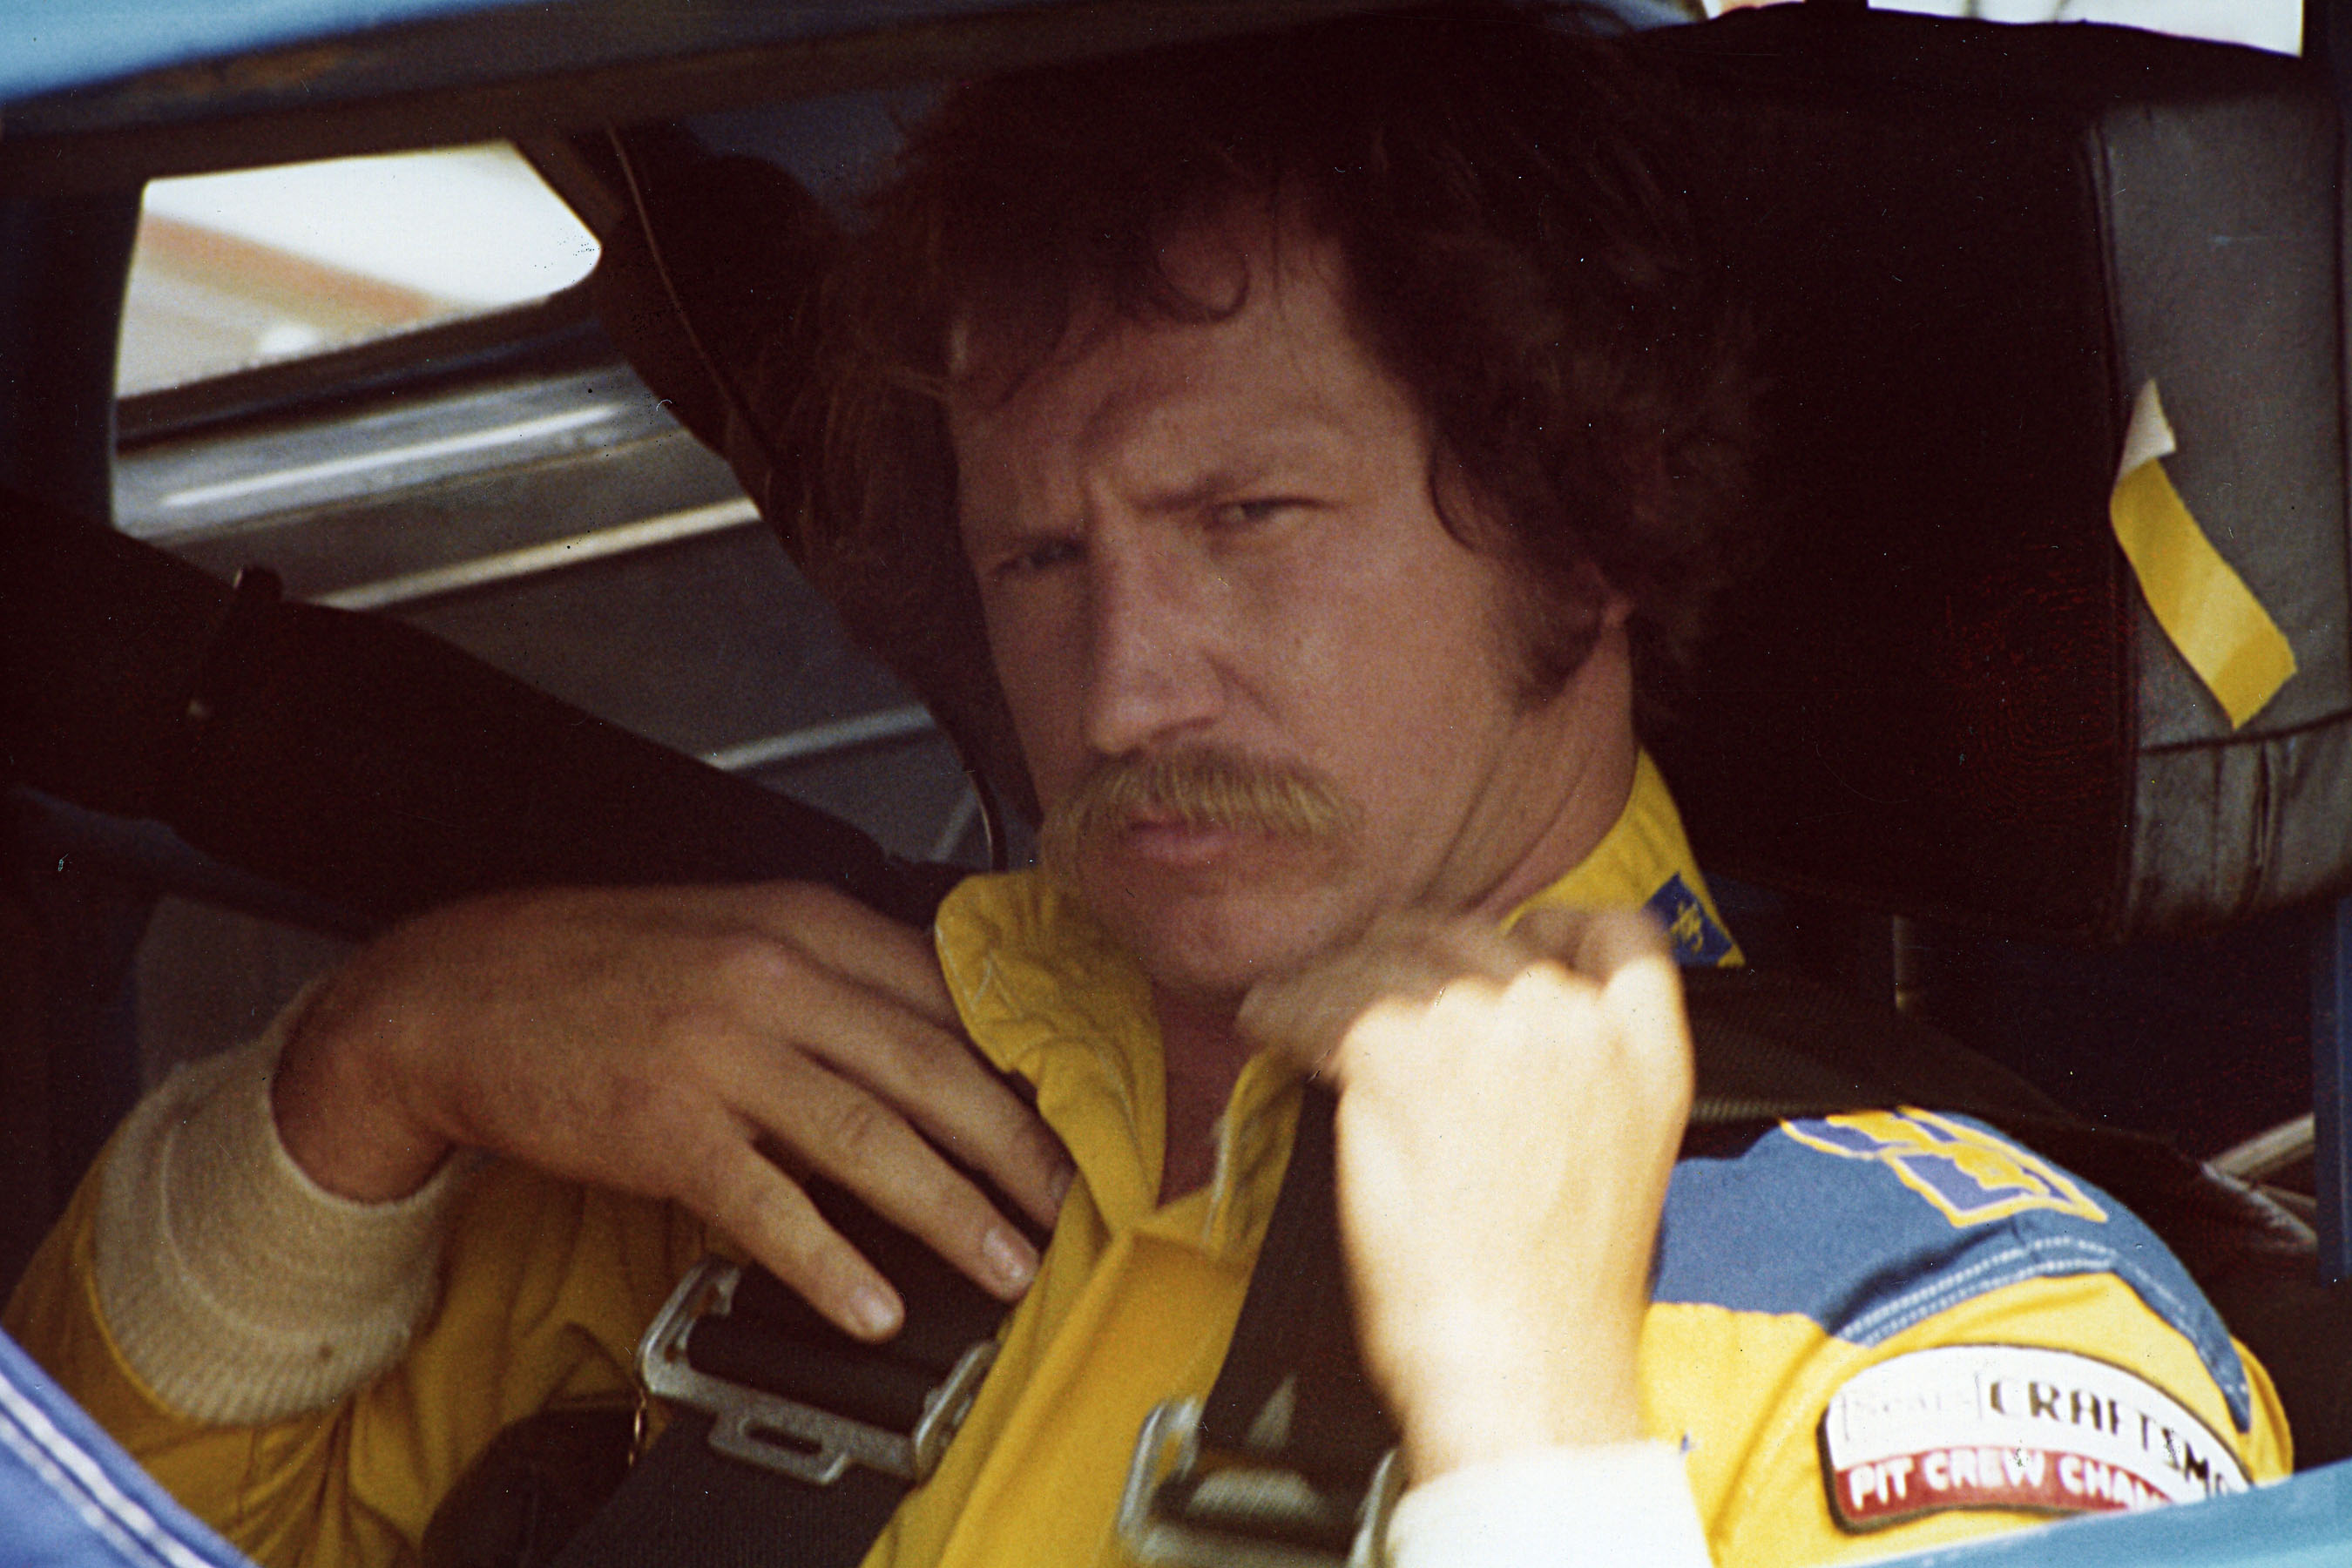 UNKNOWN – 1981: After winning the 1980 NASCAR Cup title in just his second full season on the circuit, the following season would be one of turmoil for Dale Earnhardt.  He and his sponsor, Wrangler, would see the Pontiacs Earnhardt drove have three different owners during the year.  After racing for Rod Osterlund in the first 16 events, the team was sold to Jim Stacy.  After just four races with Stacy, Earnhardt and his sponsor moved to the Richard Childress operation for the rest of the year.  The ride-hopping took its toll, as Earnhardt was shut out of victory lane, but still managed to finish seventh in Cup points.  (Photo by ISC Images & Archives via Getty Images)